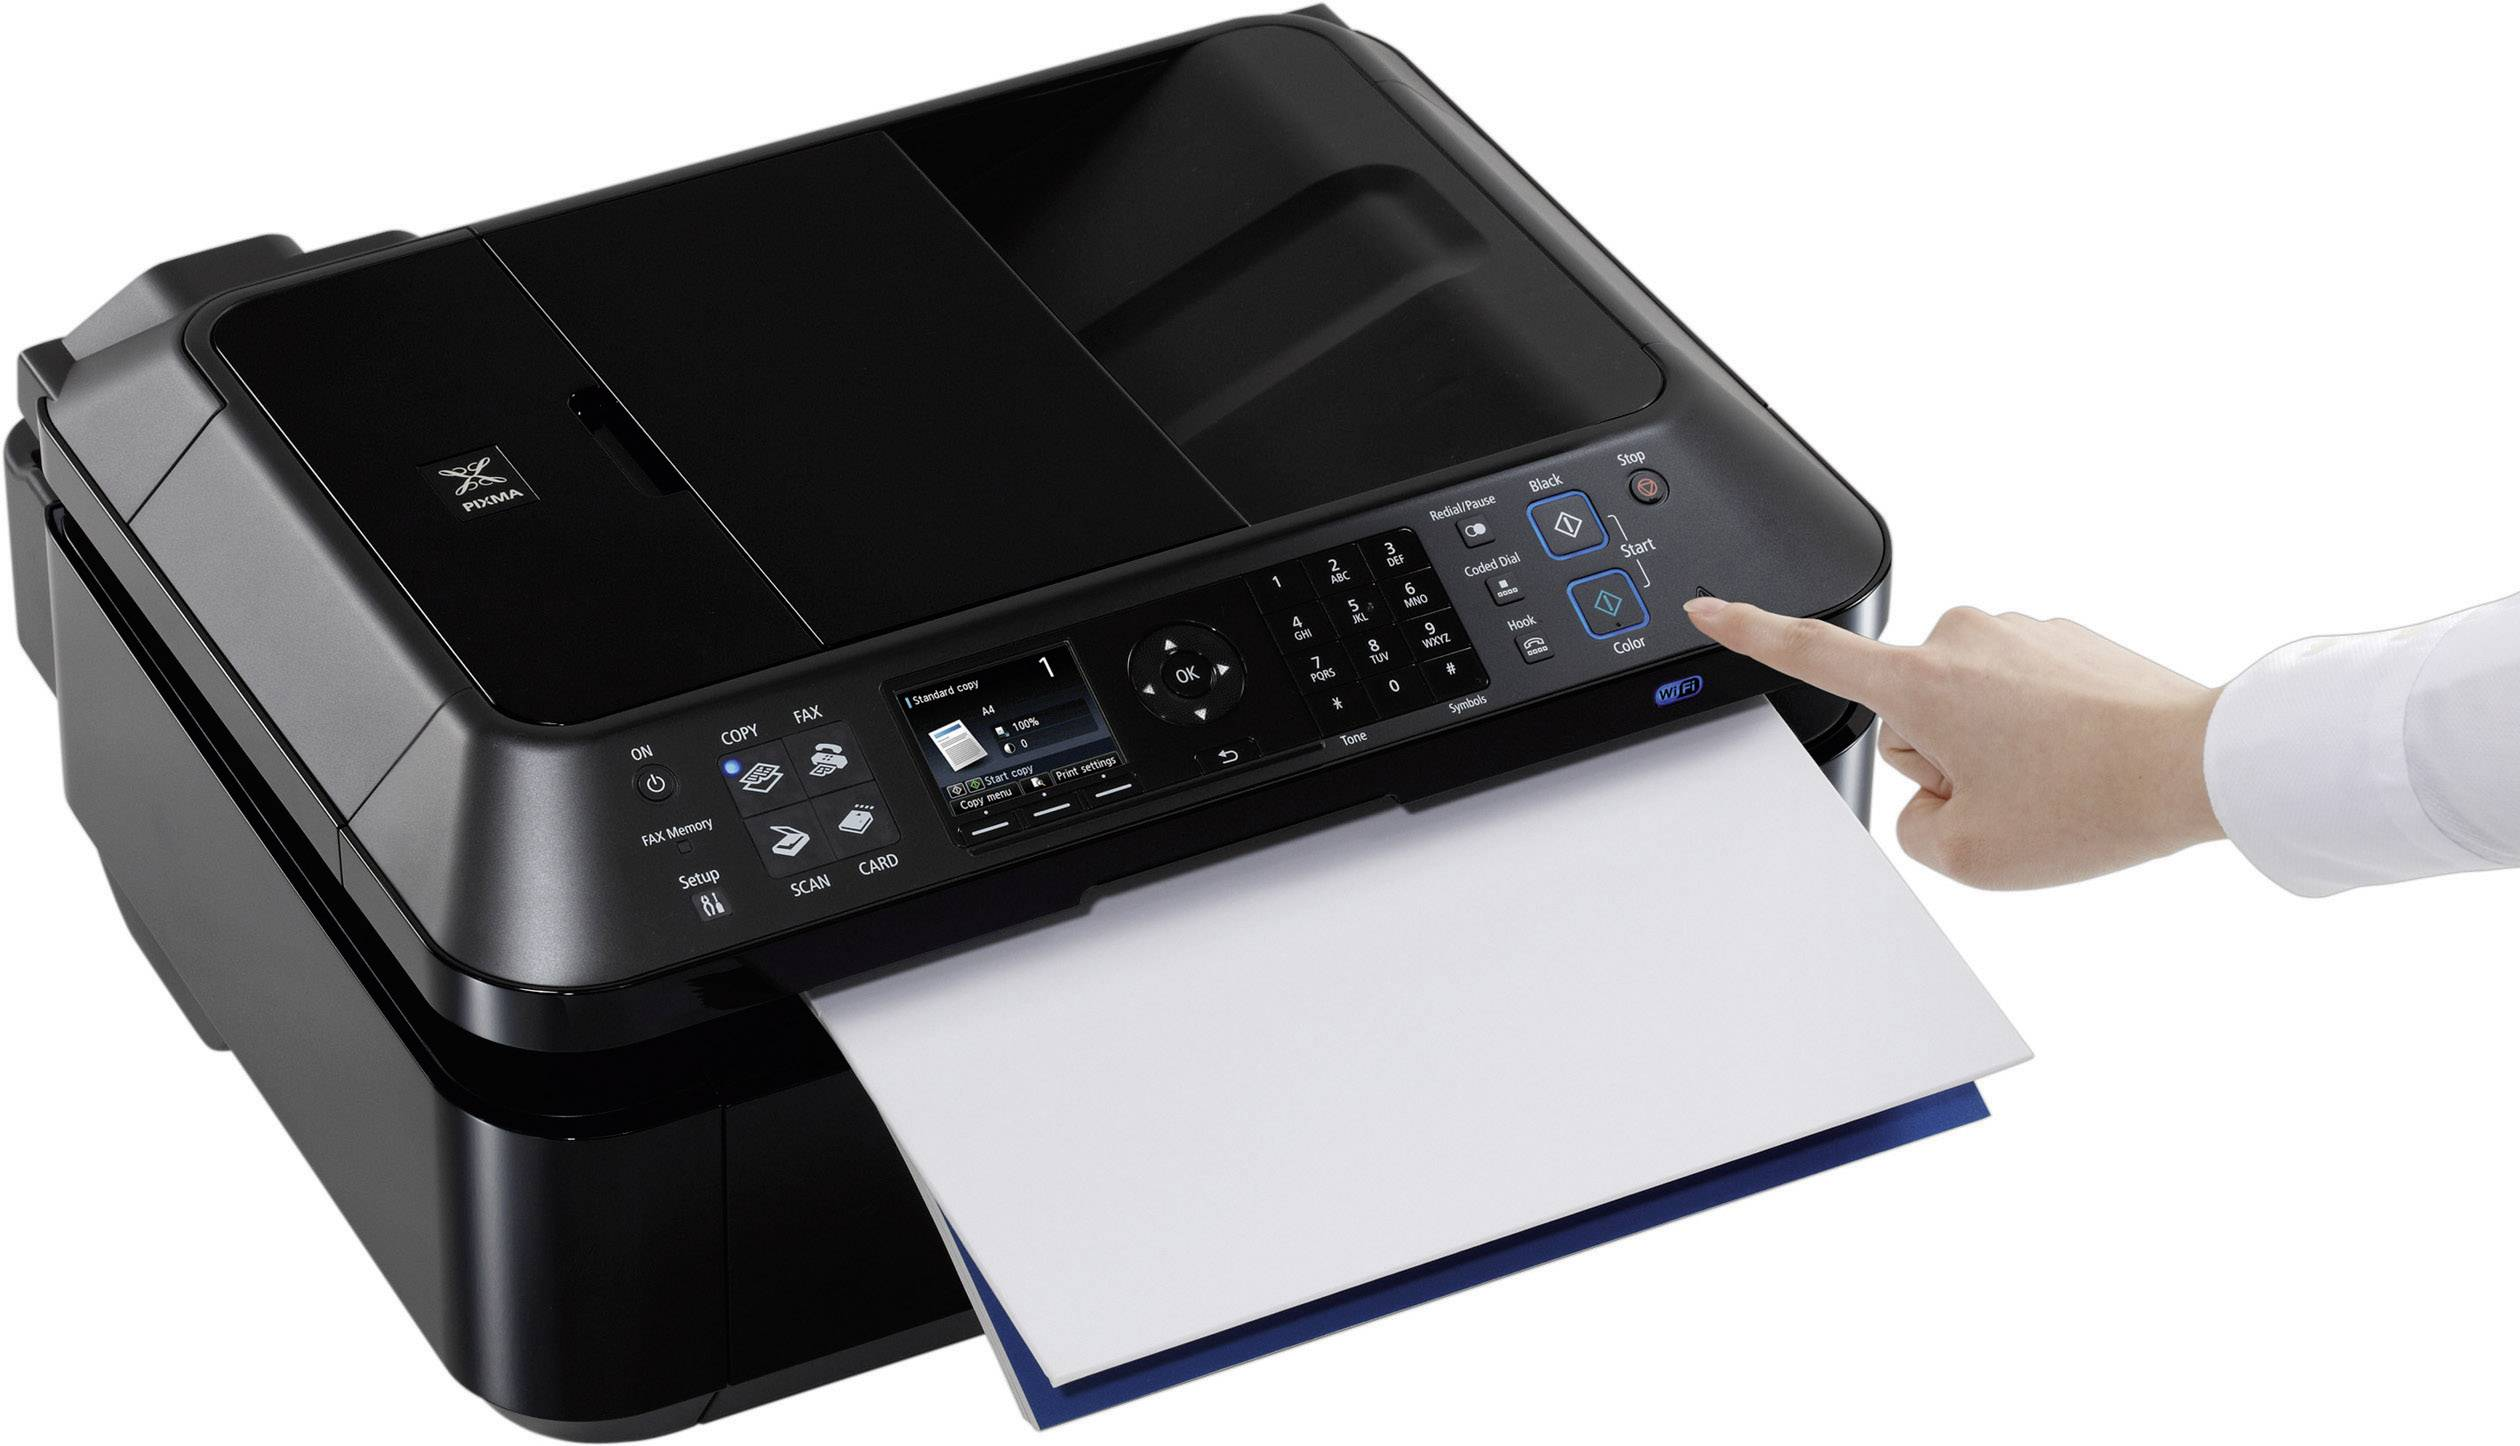 Canon photo scanner feeder 8 Best Photo Scanners of 2018 ReviewLab